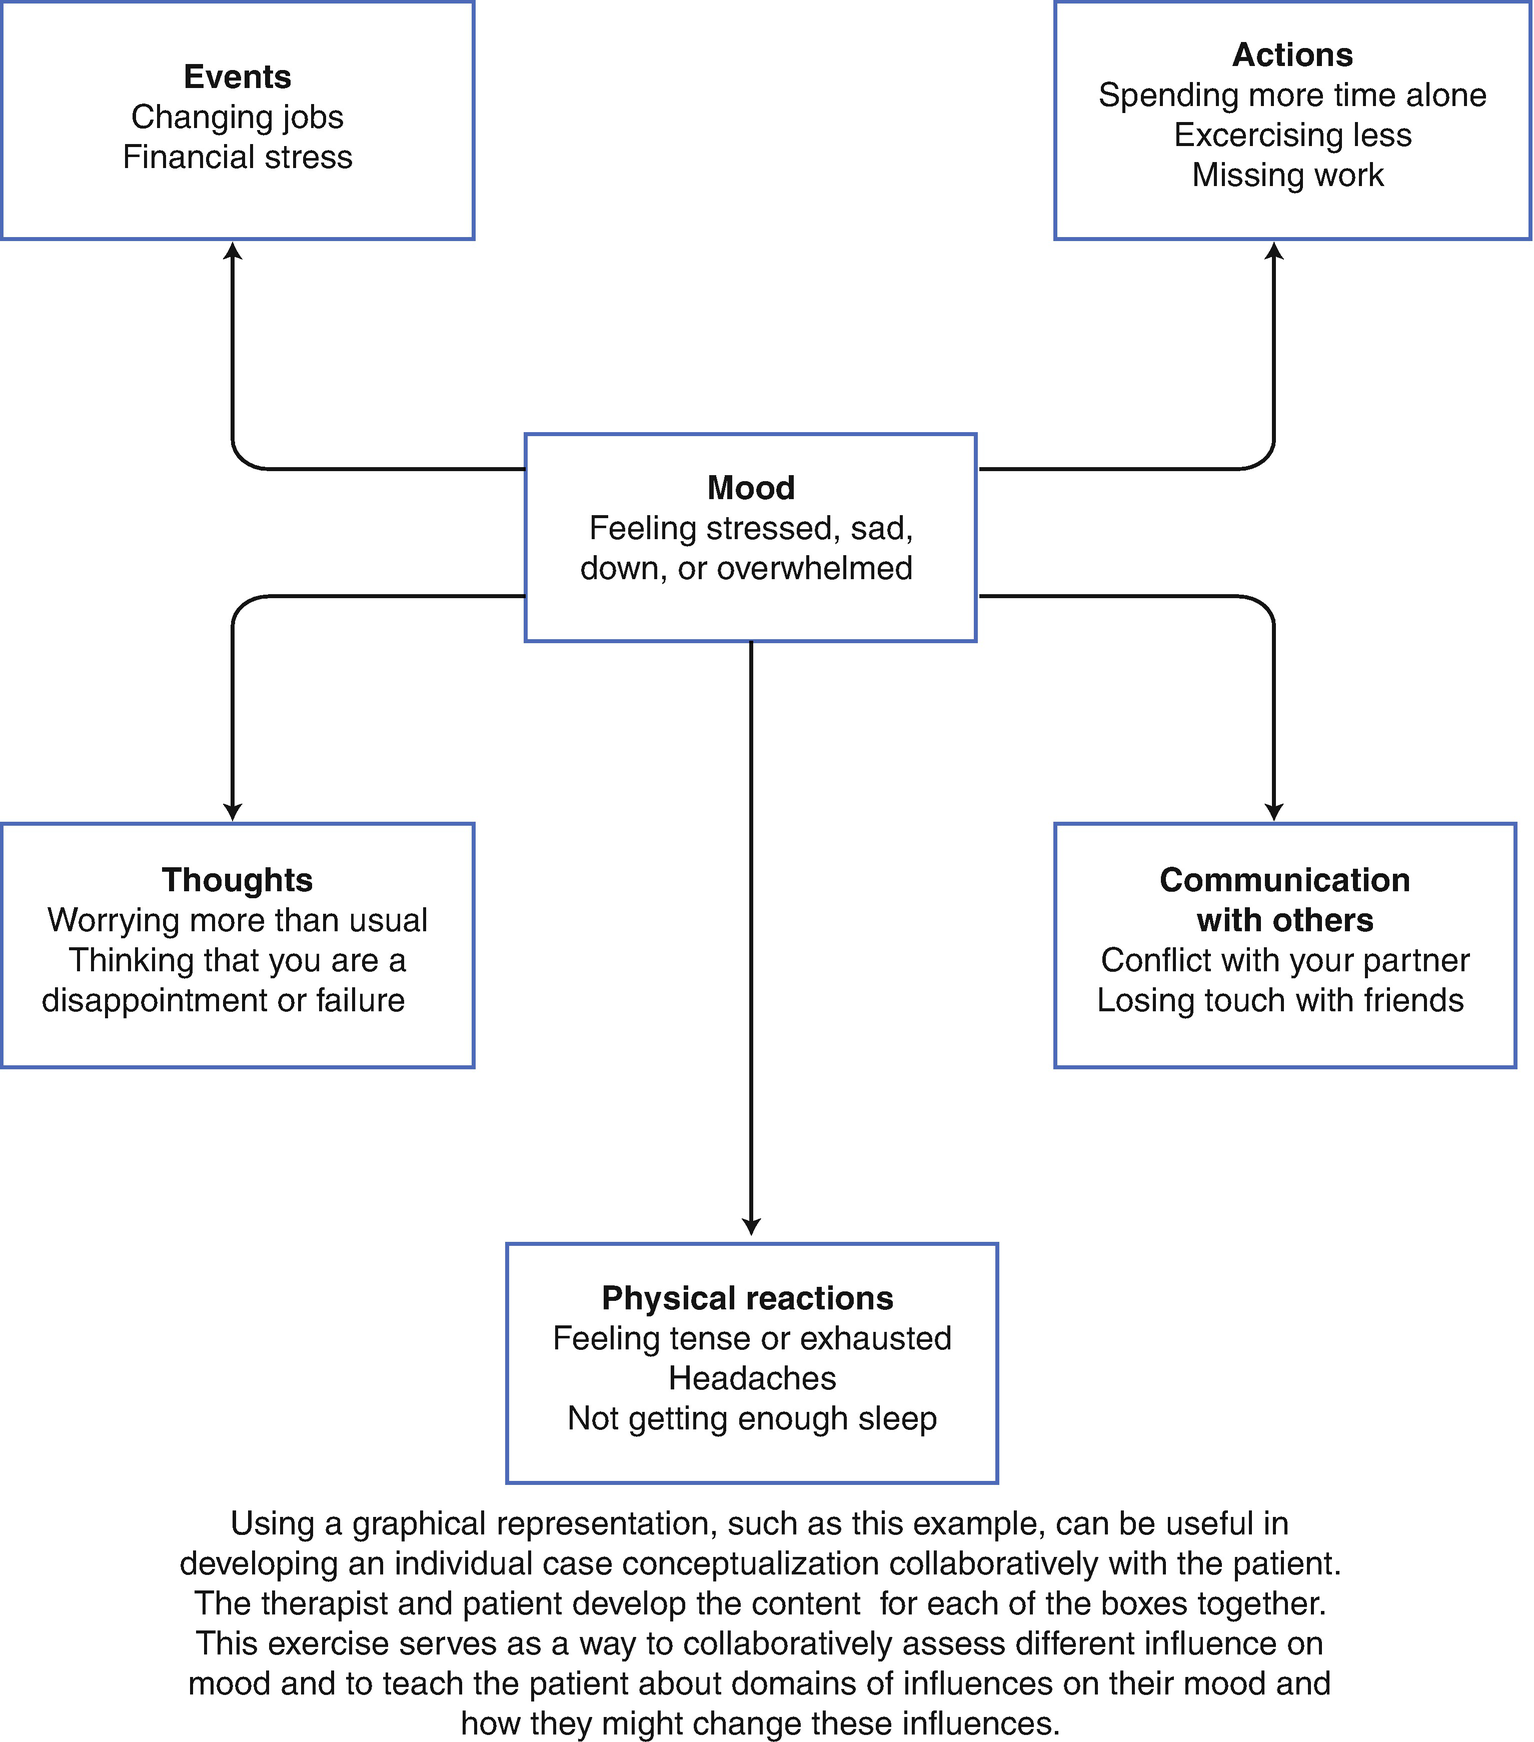 Anxiety and Depression in Patients with Chronic Pain